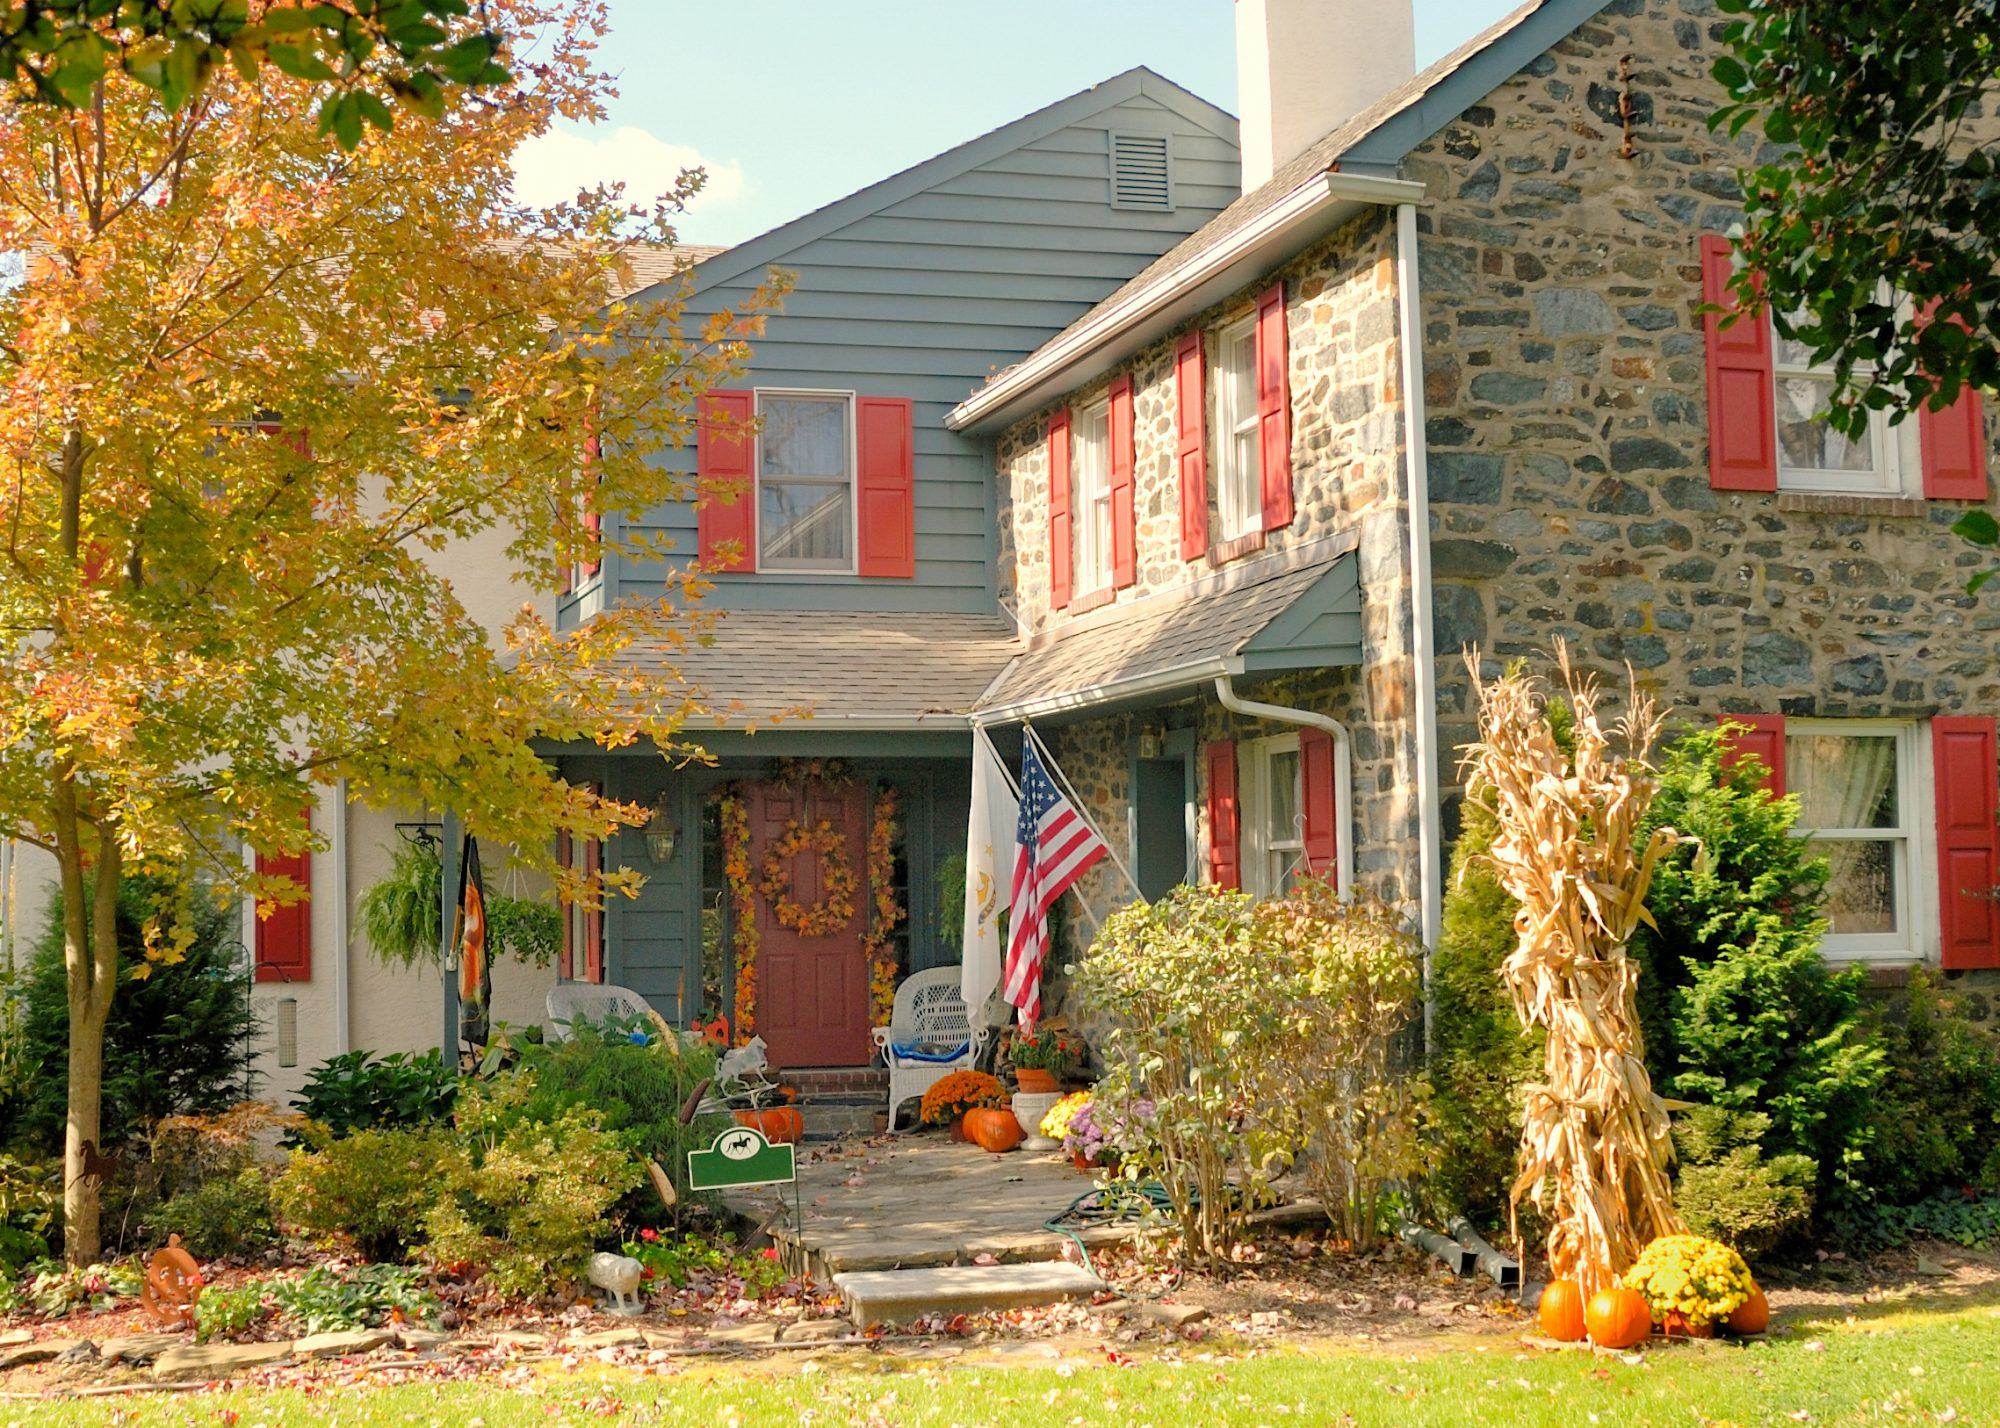 fall home with seasonal decorations